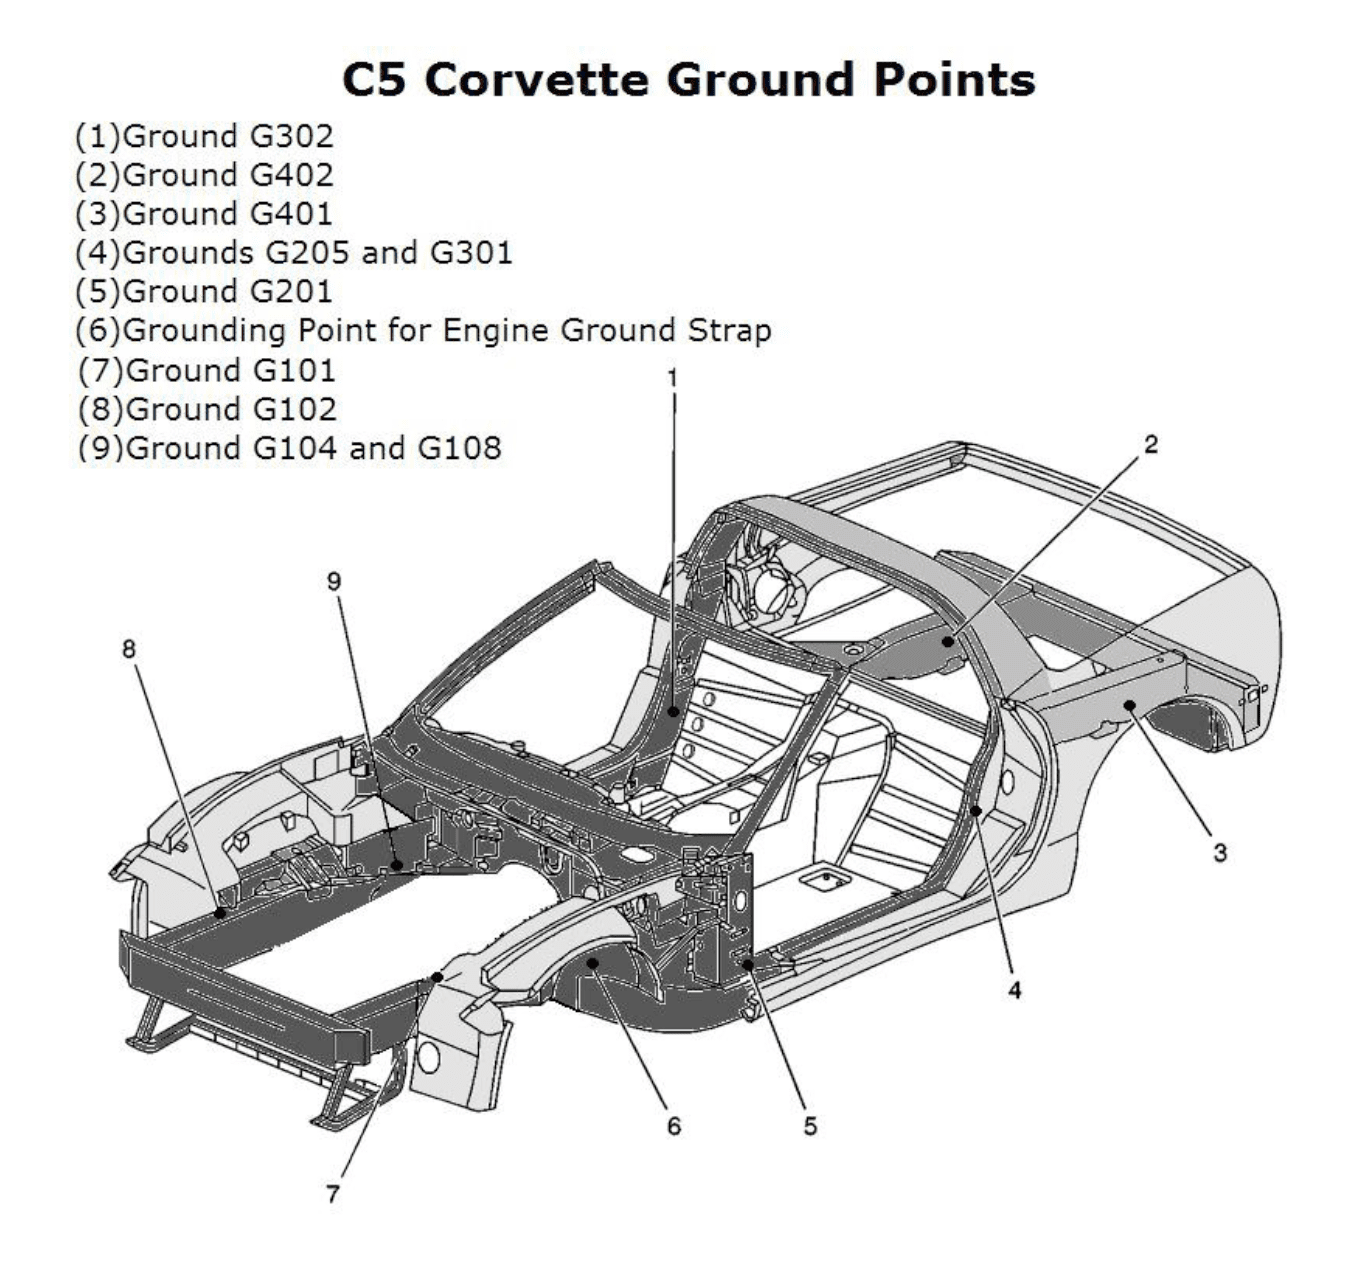 Corvette-C5-Chassis-Ground-Locations.png